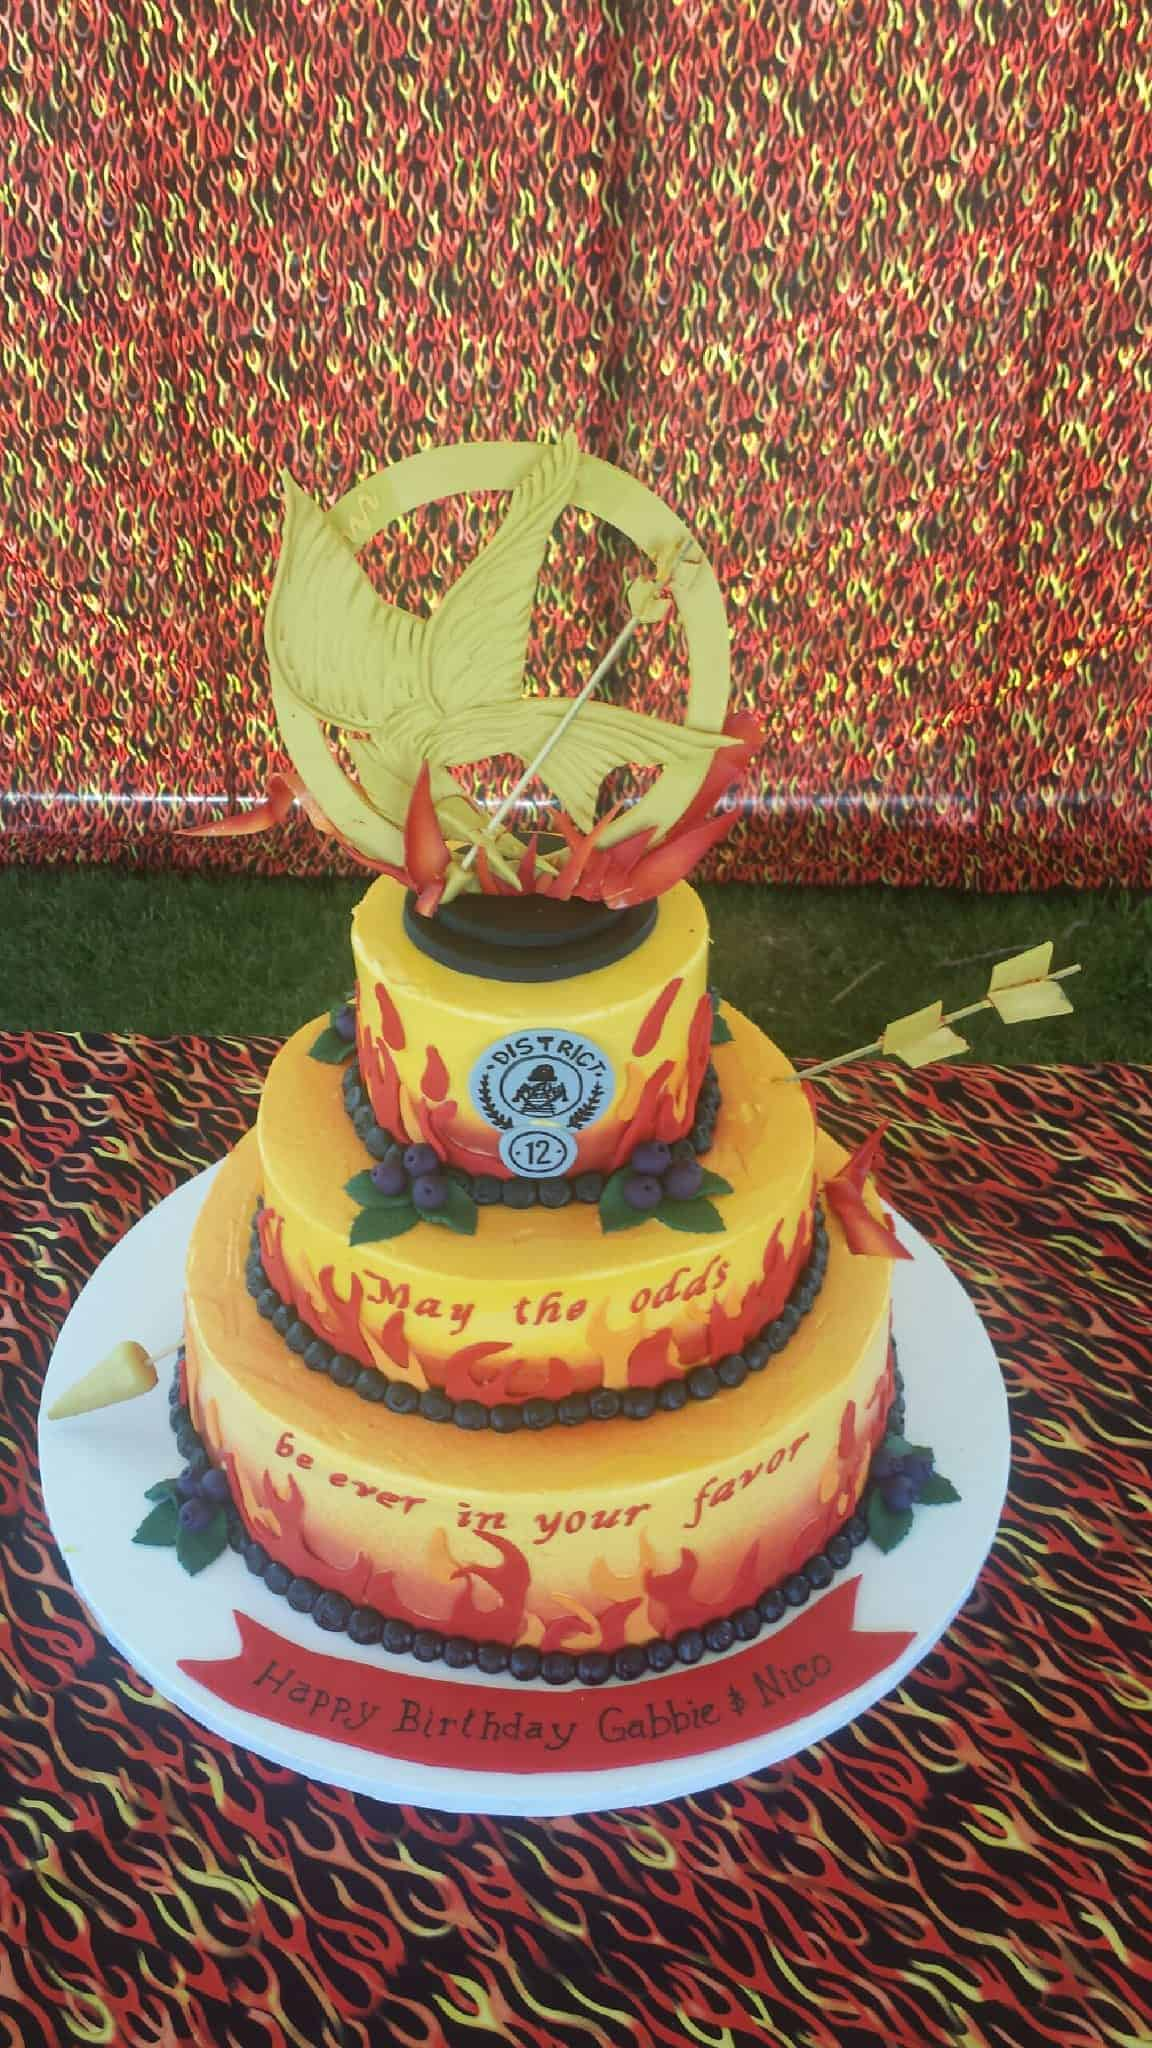 Tremendous Fire And Archery Birthday Cake In Denver The Makery Cake Co Personalised Birthday Cards Veneteletsinfo